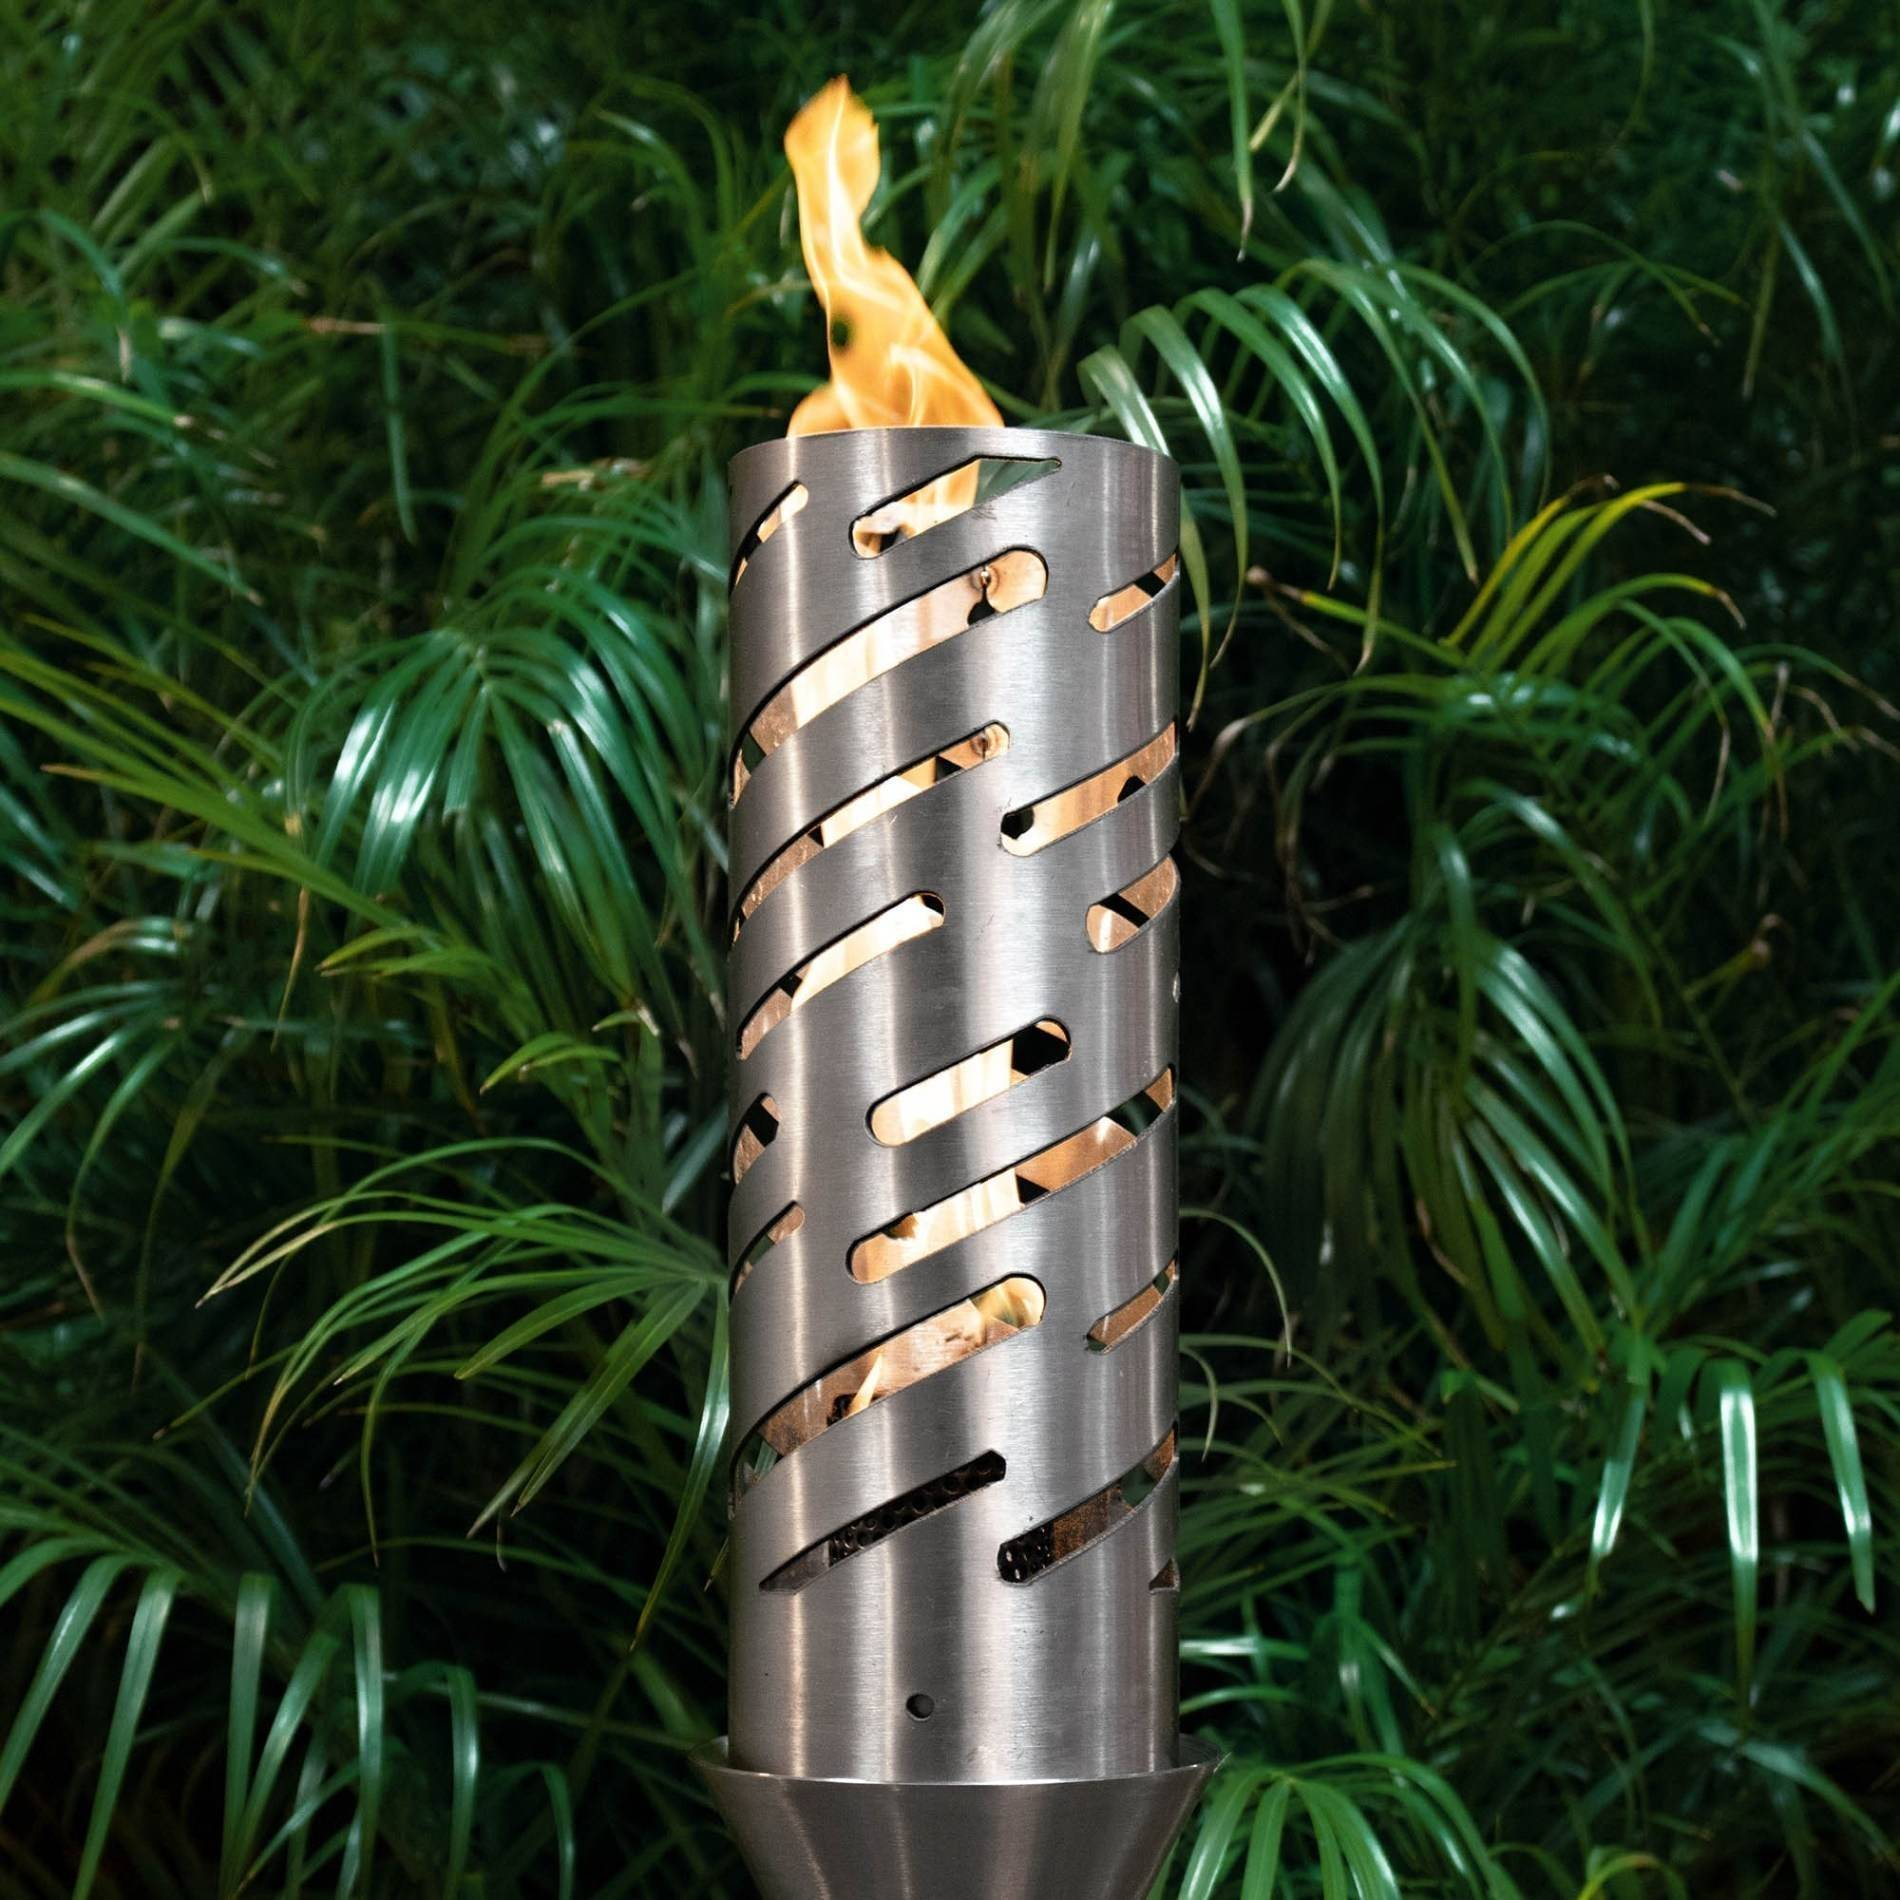 Shooting Star Gas Tiki Torch